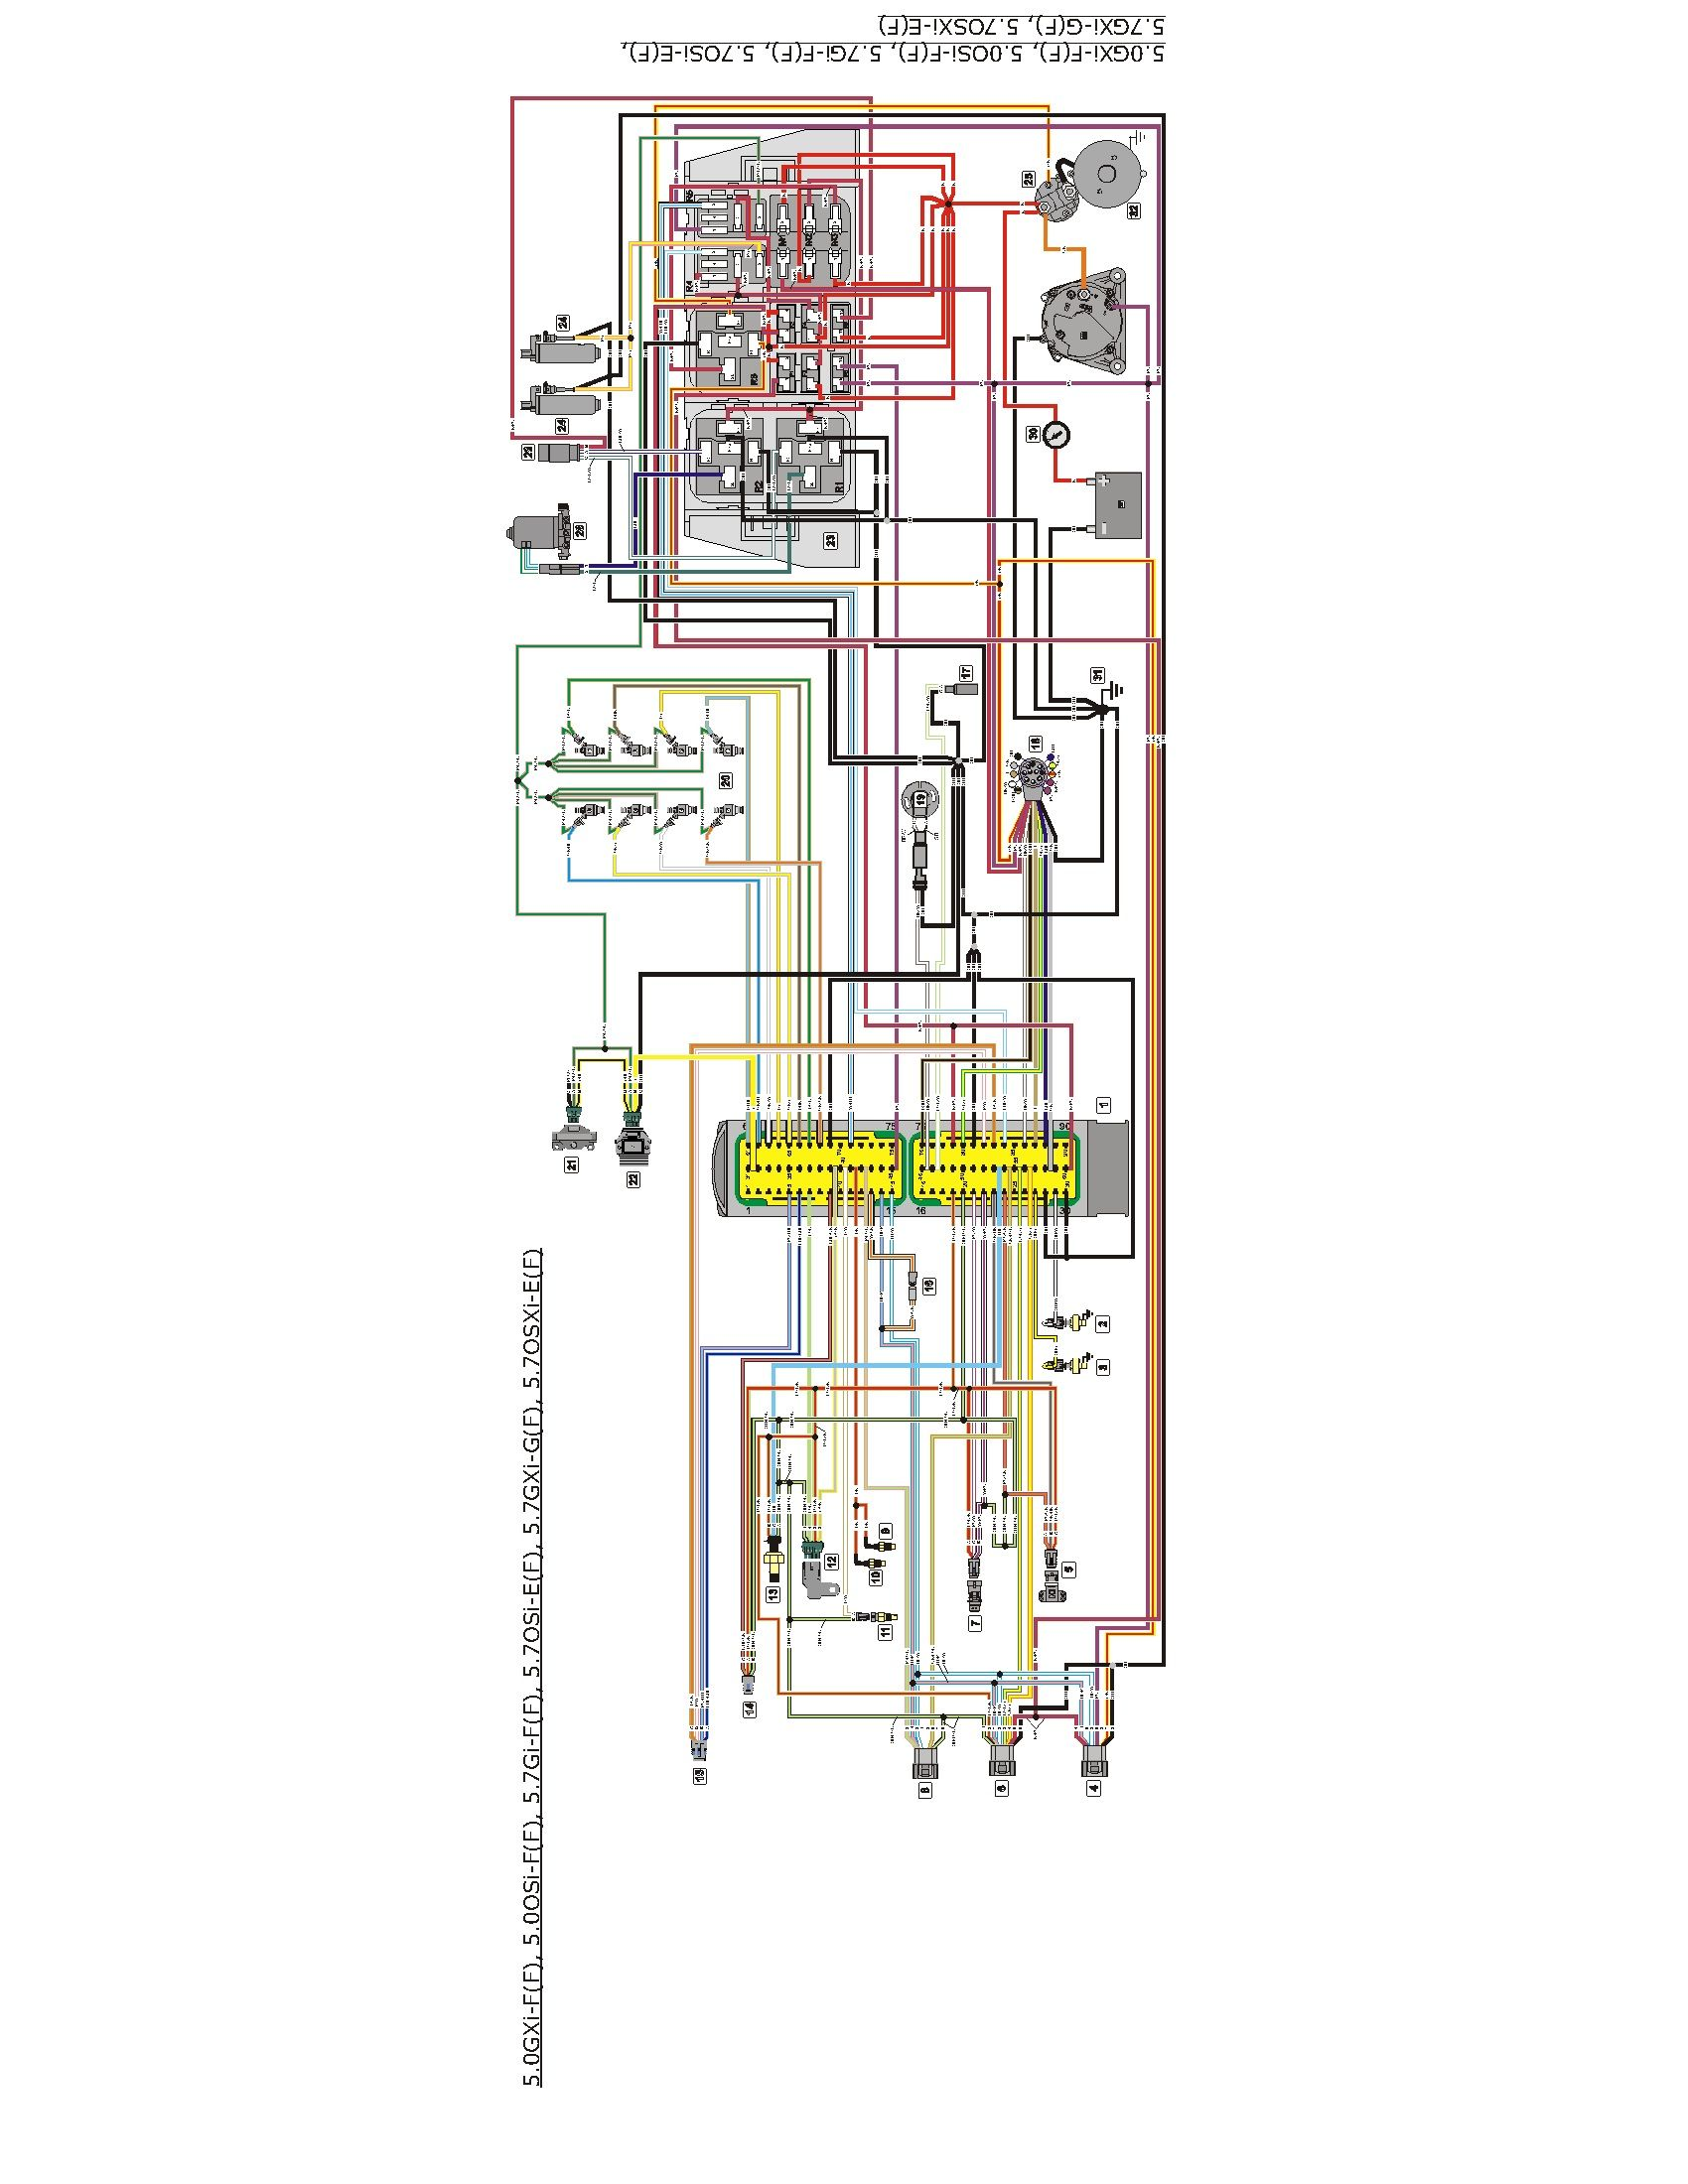 38e0106861e0fe47e508530985b32839 volvo penta 5 7 wiring diagram simple boat wiring diagram \u2022 free volvo penta 5.7 gxi wiring diagram at edmiracle.co